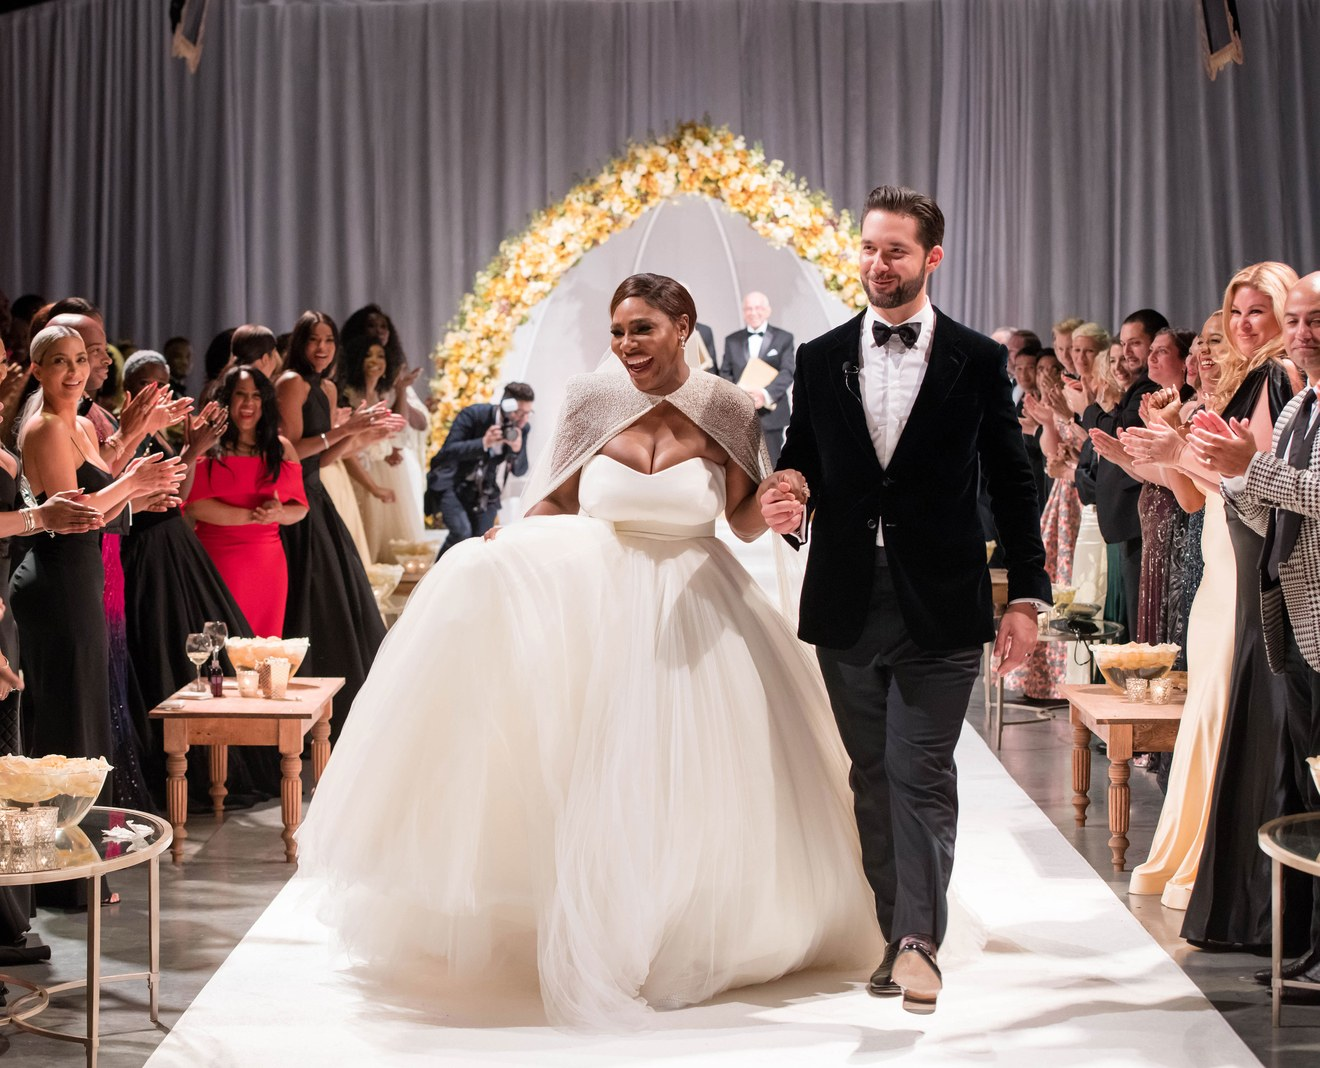 00-story-image-serena-and-alexis-wedding